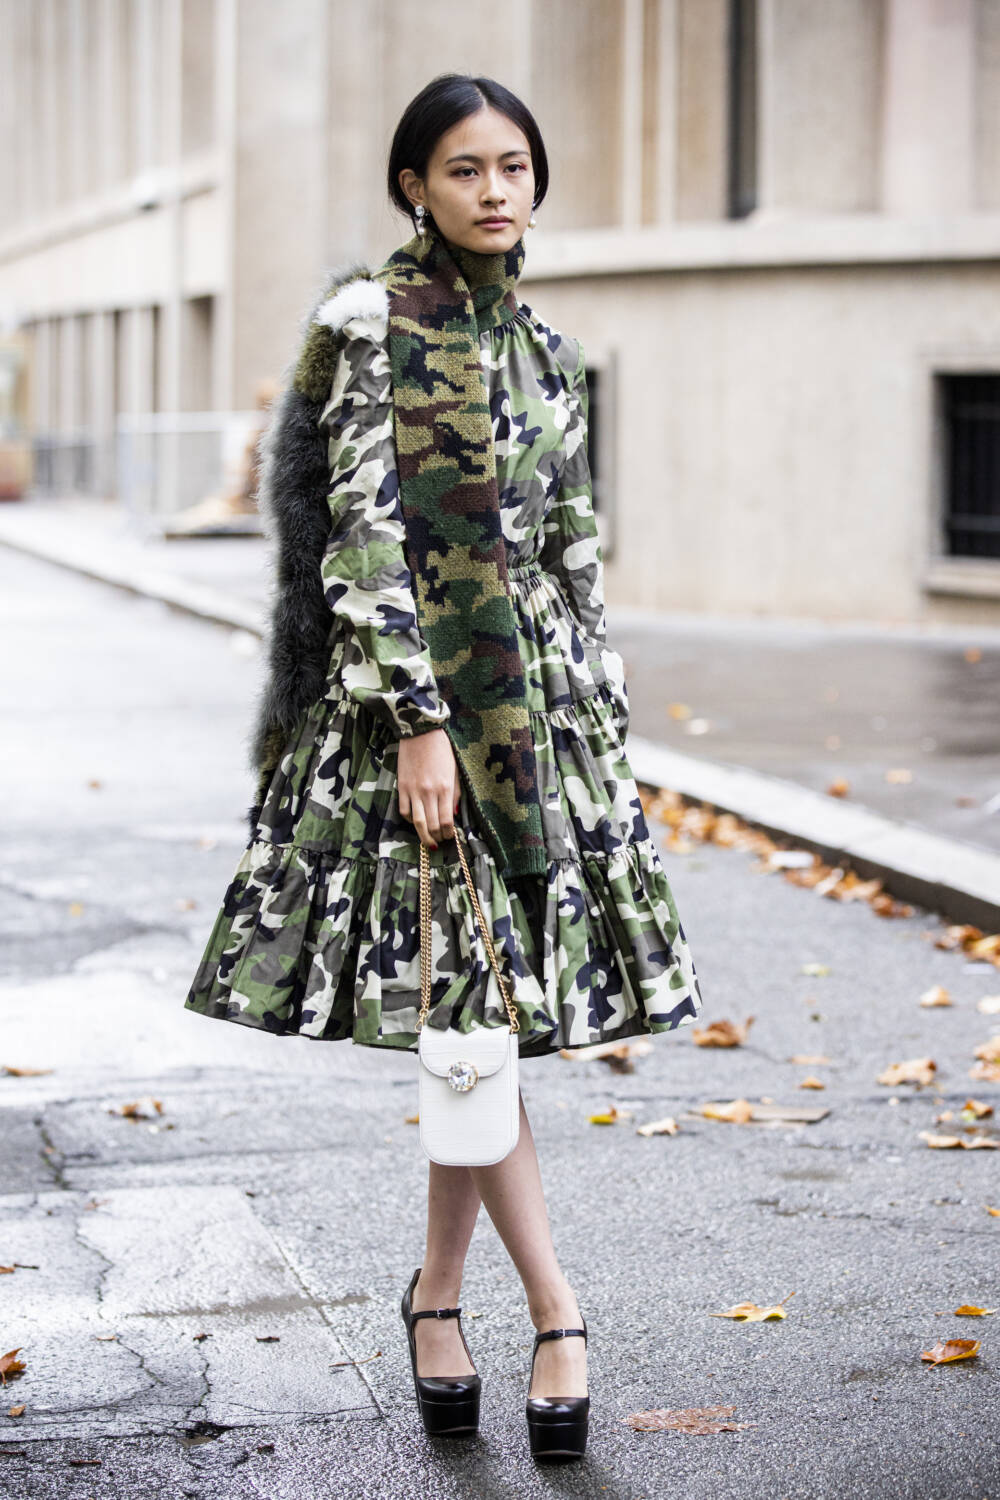 Frau mit Camouflage-Outfit